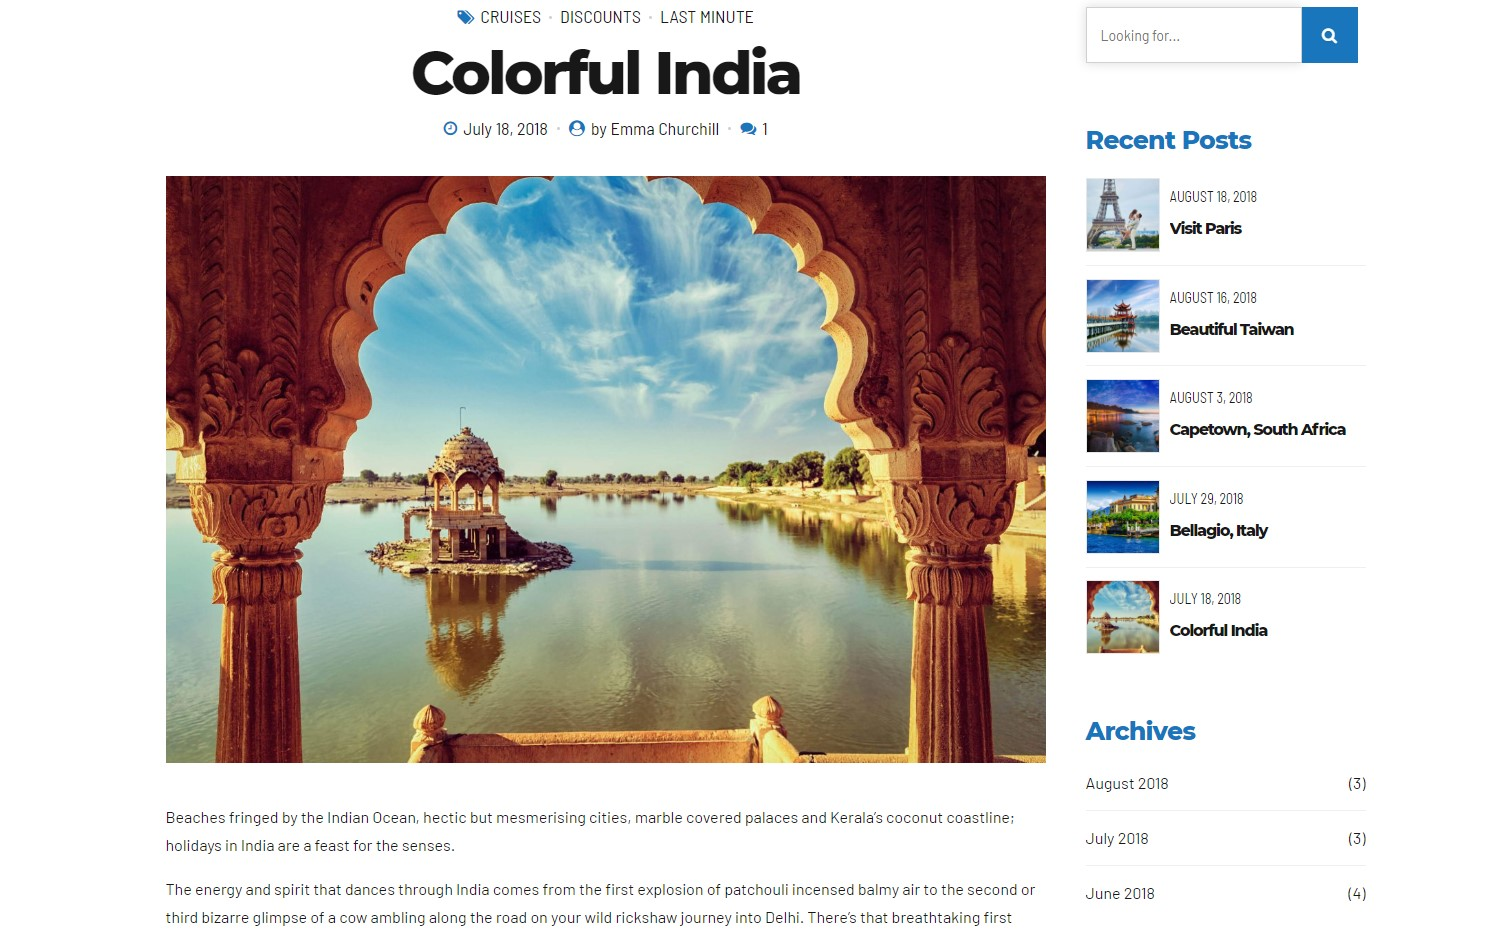 http://documentation.bold-themes.com/travelicious/wp-content/uploads/sites/37/2018/10/blog-standard.jpg